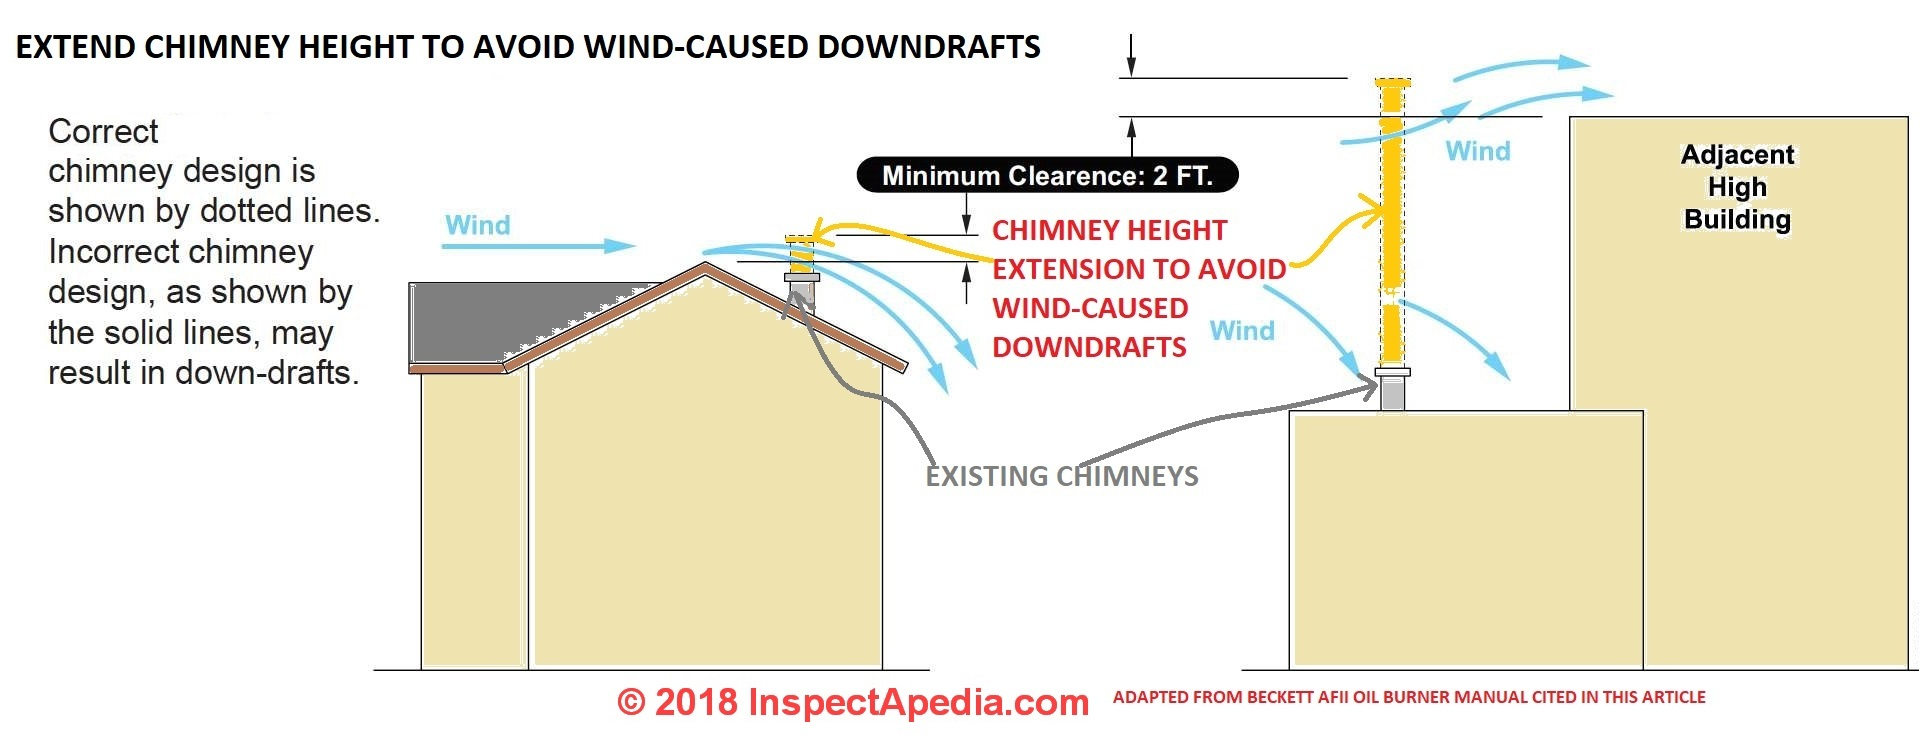 hight resolution of chimney heights extended to avoid downdrafts from local wind currents c inspectapedia com